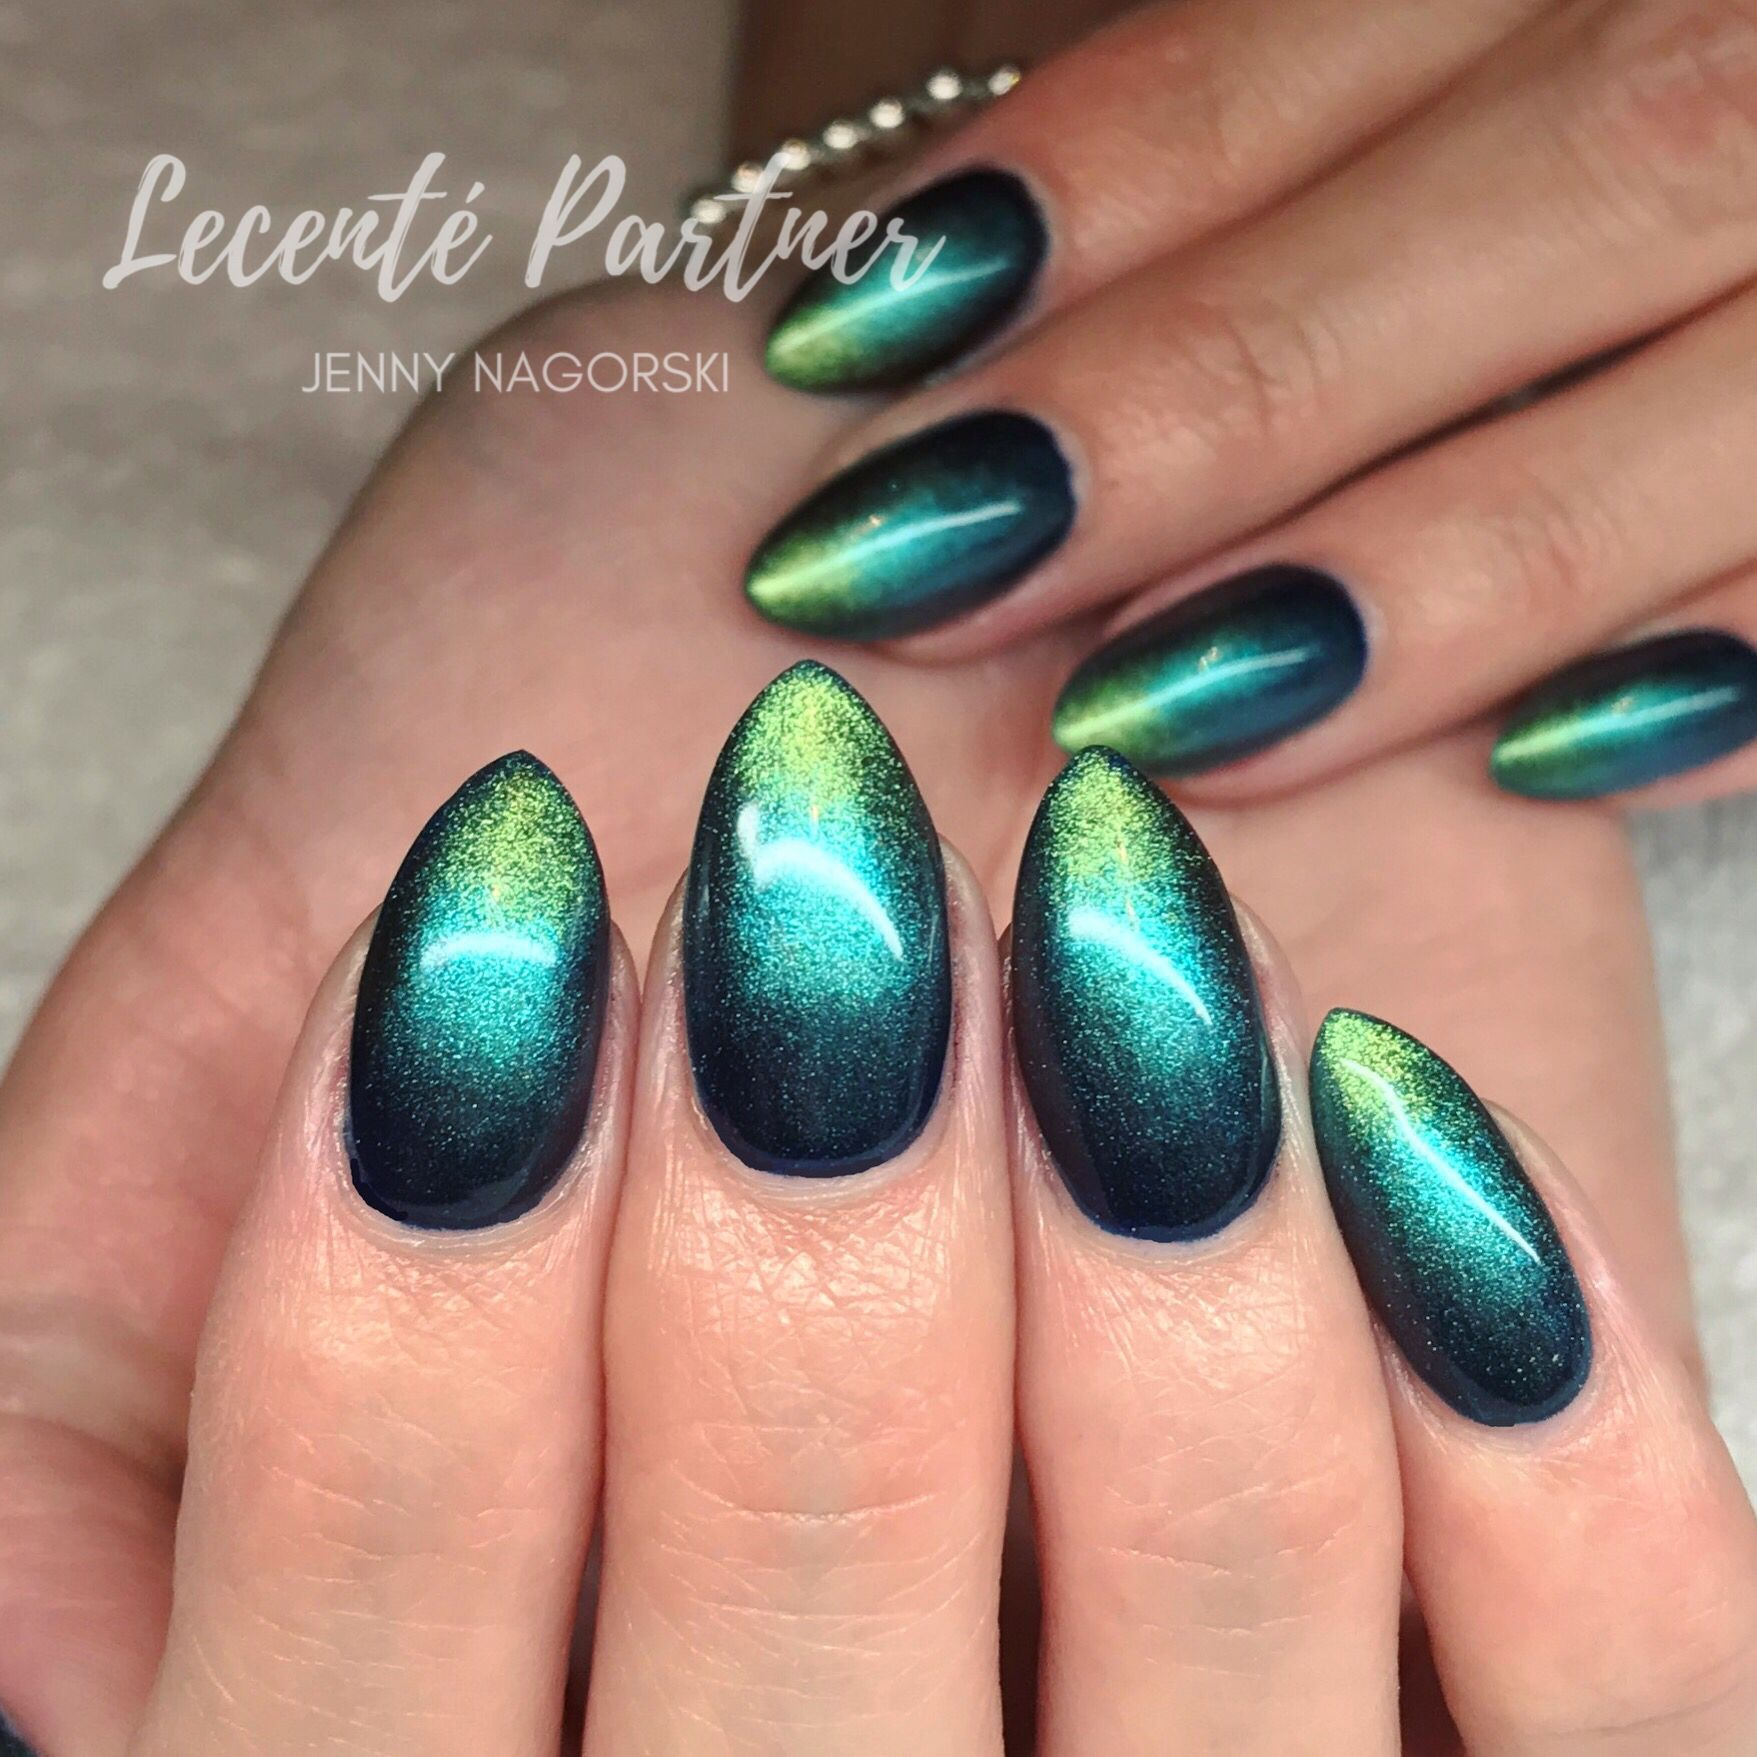 Chrome Nail Powder Cnd: CND Shellac And Lecente Stardust And Chrome Powders